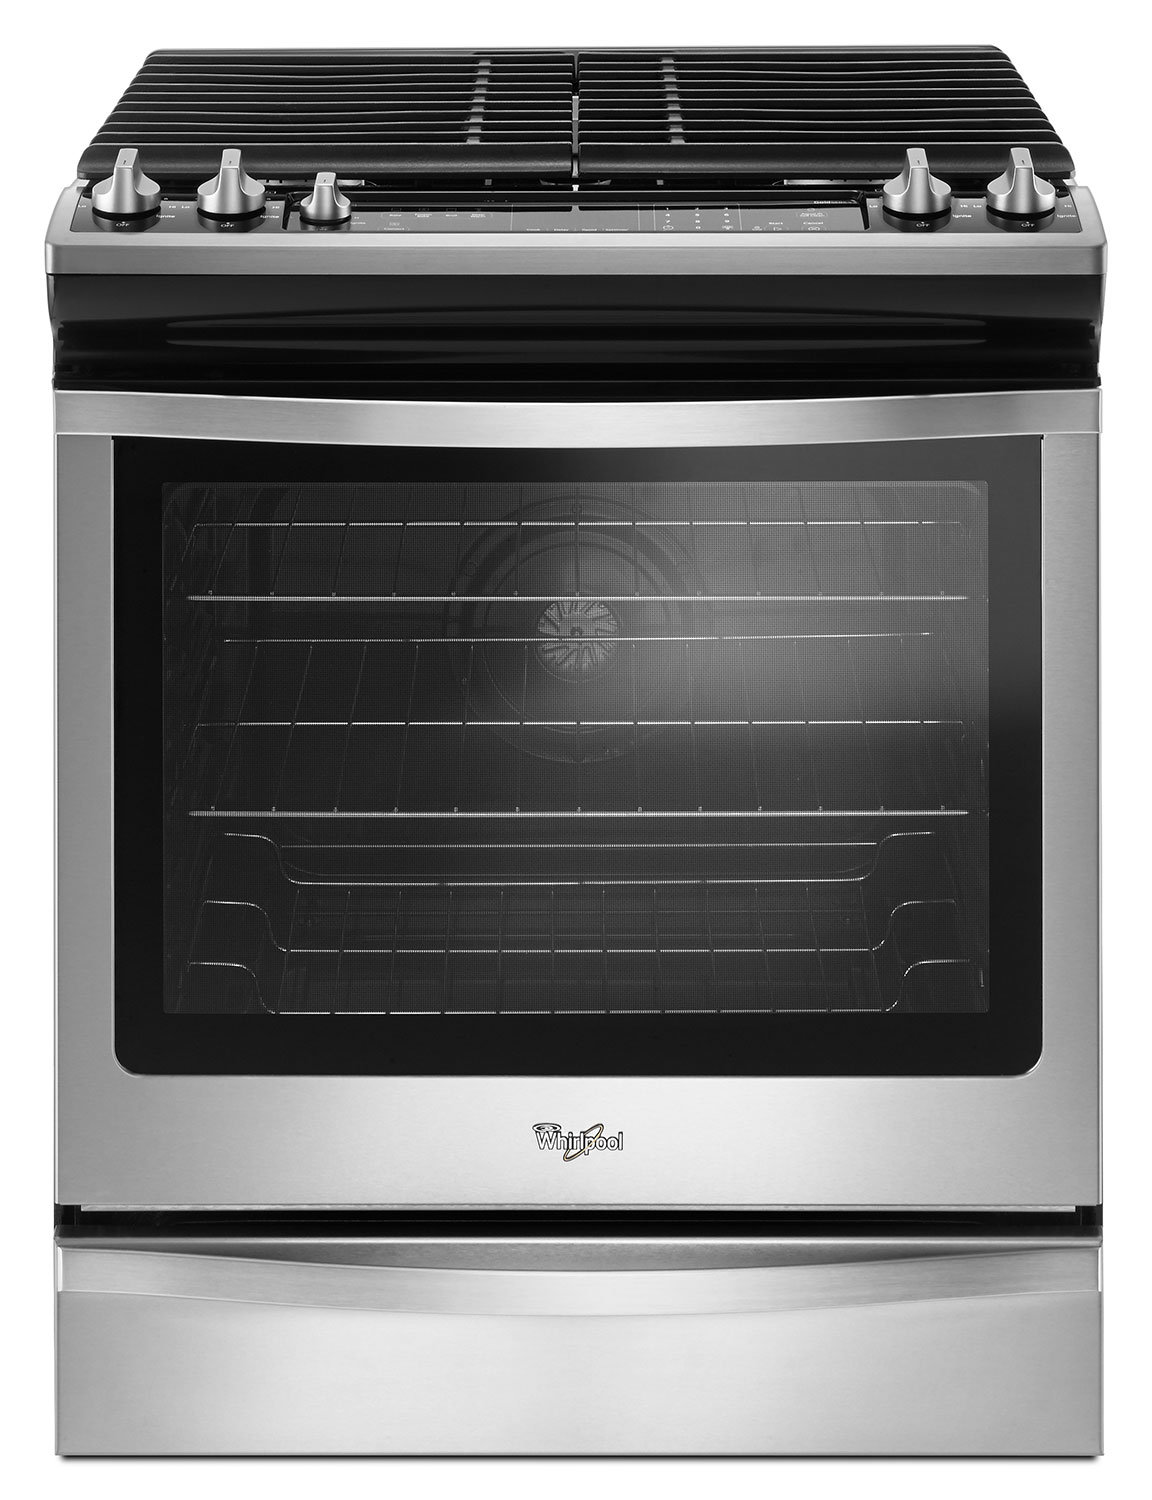 Whirlpool® 5.8 Cu. Ft. Slide-In Gas Range with EZ-2-Lift™ Hinged Grates